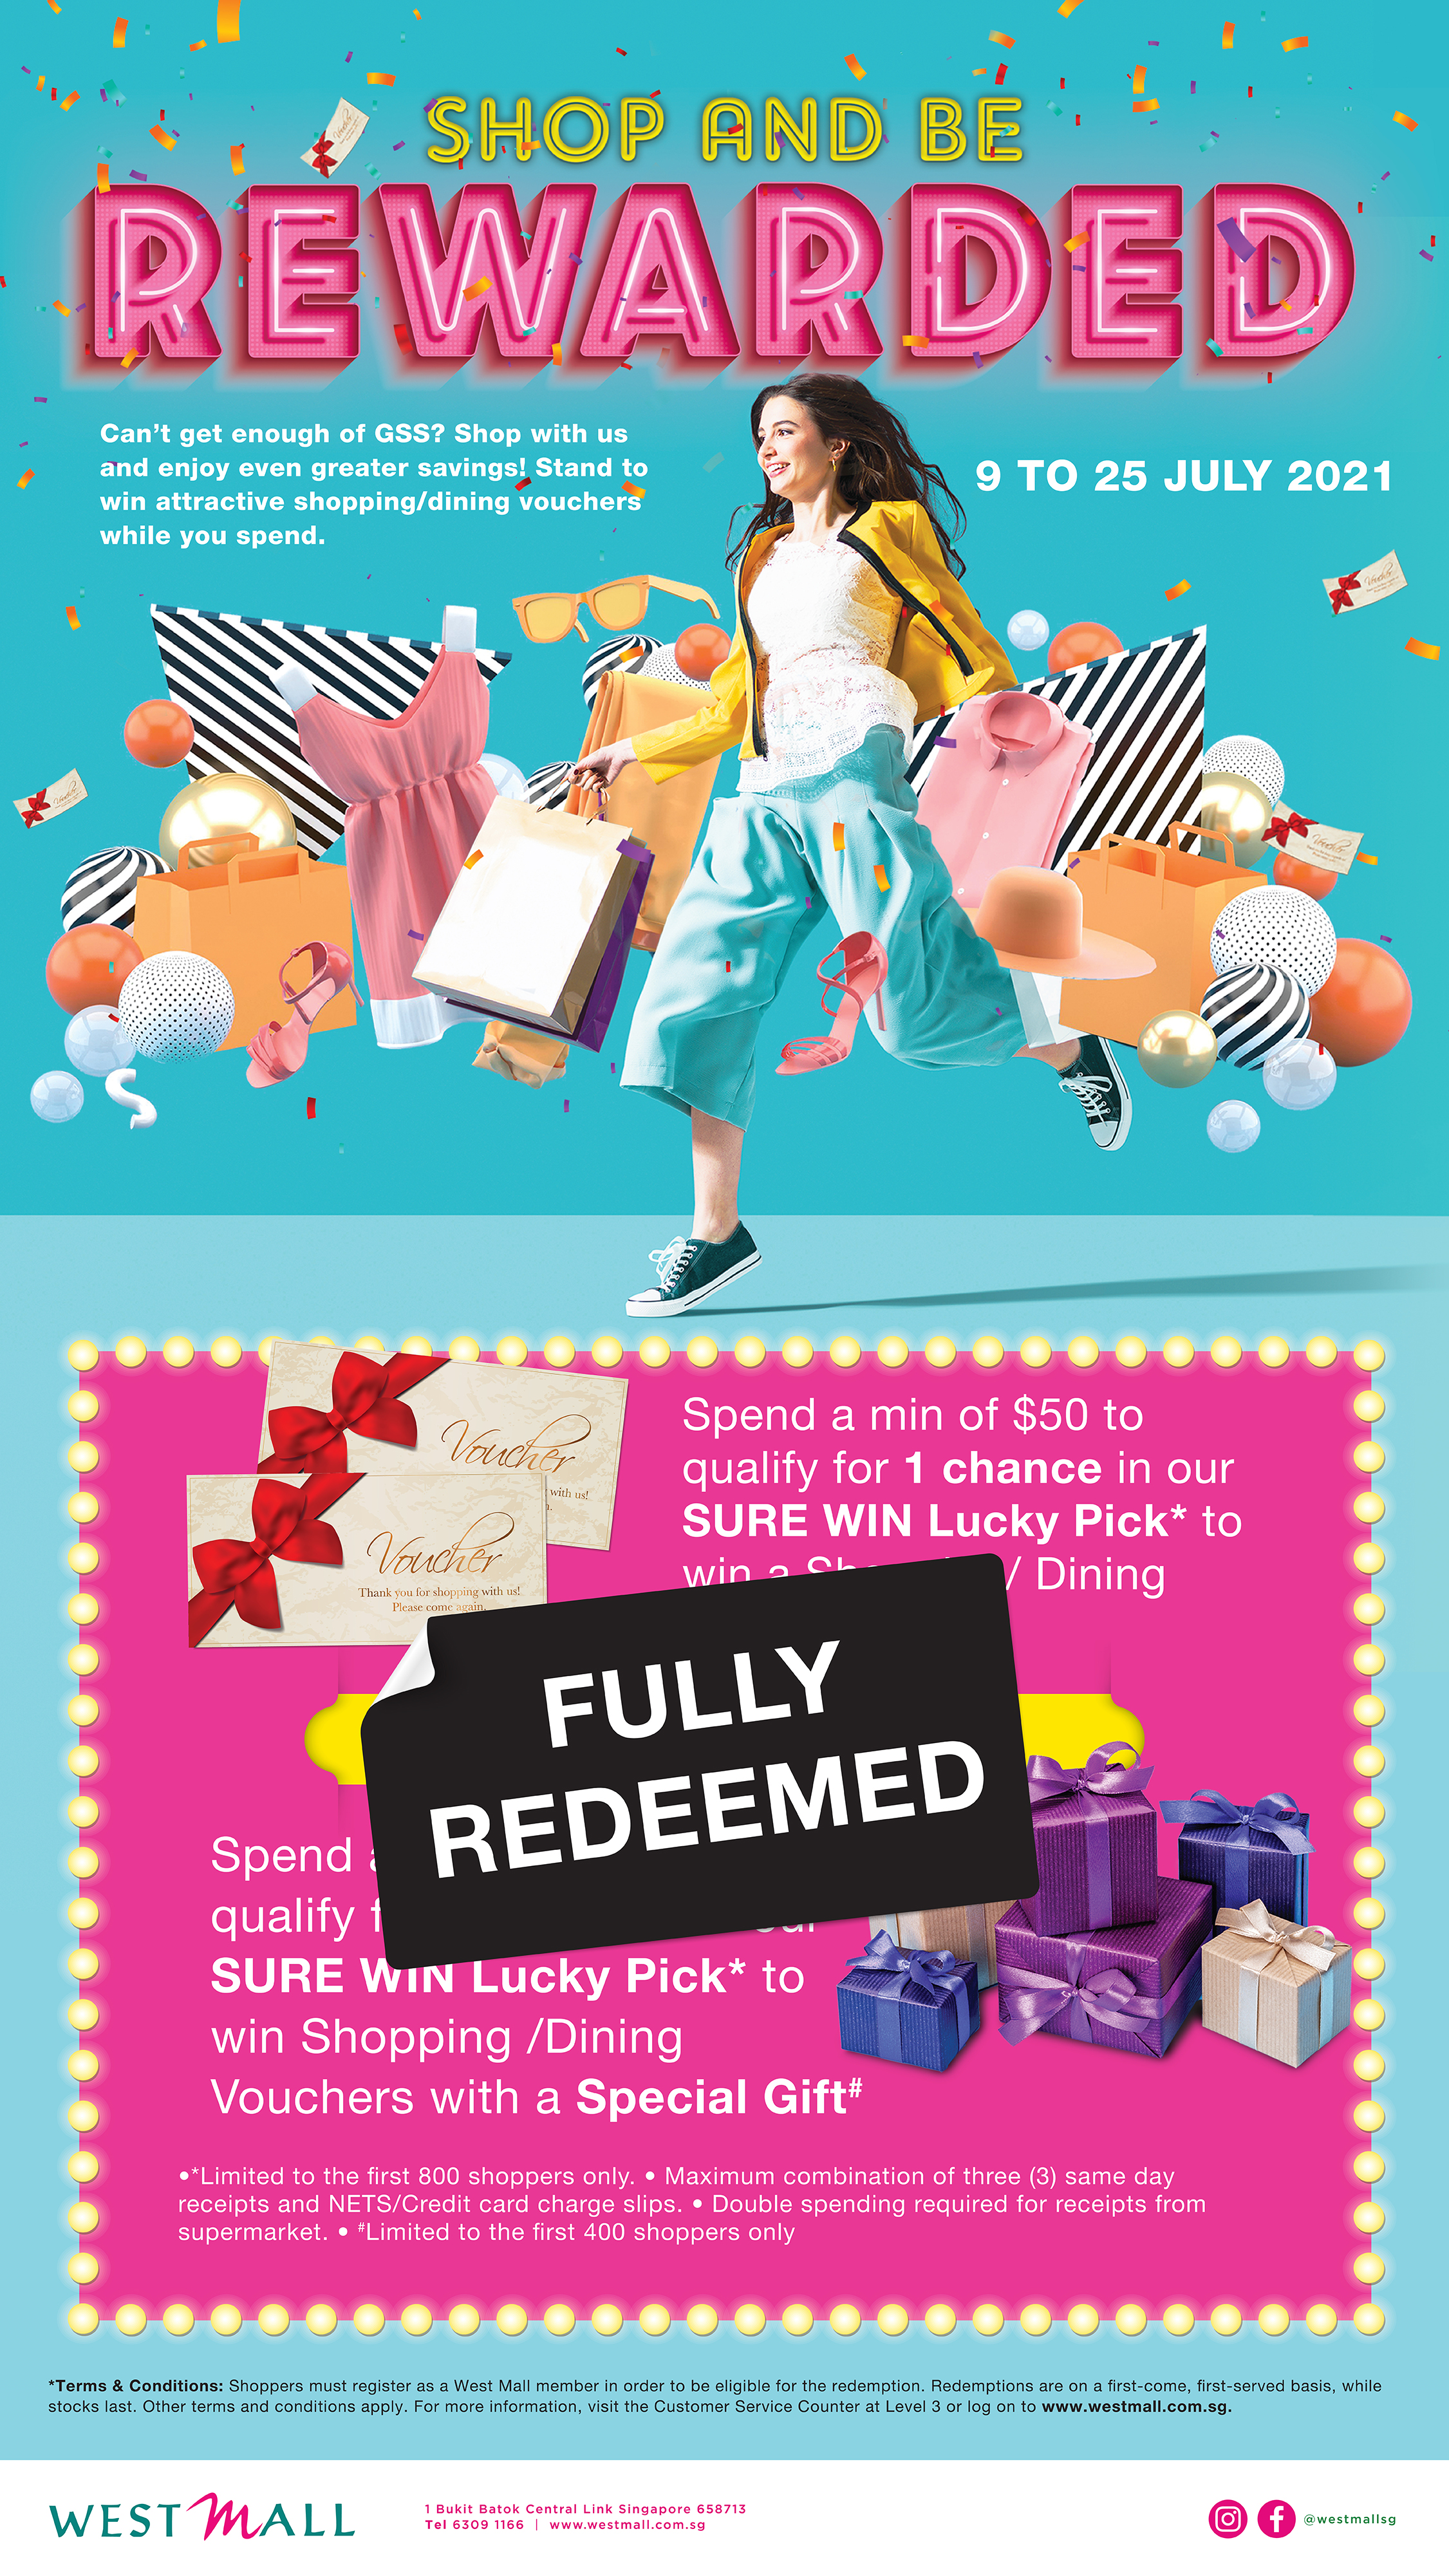 Shop and be Rewarded at West Mall!